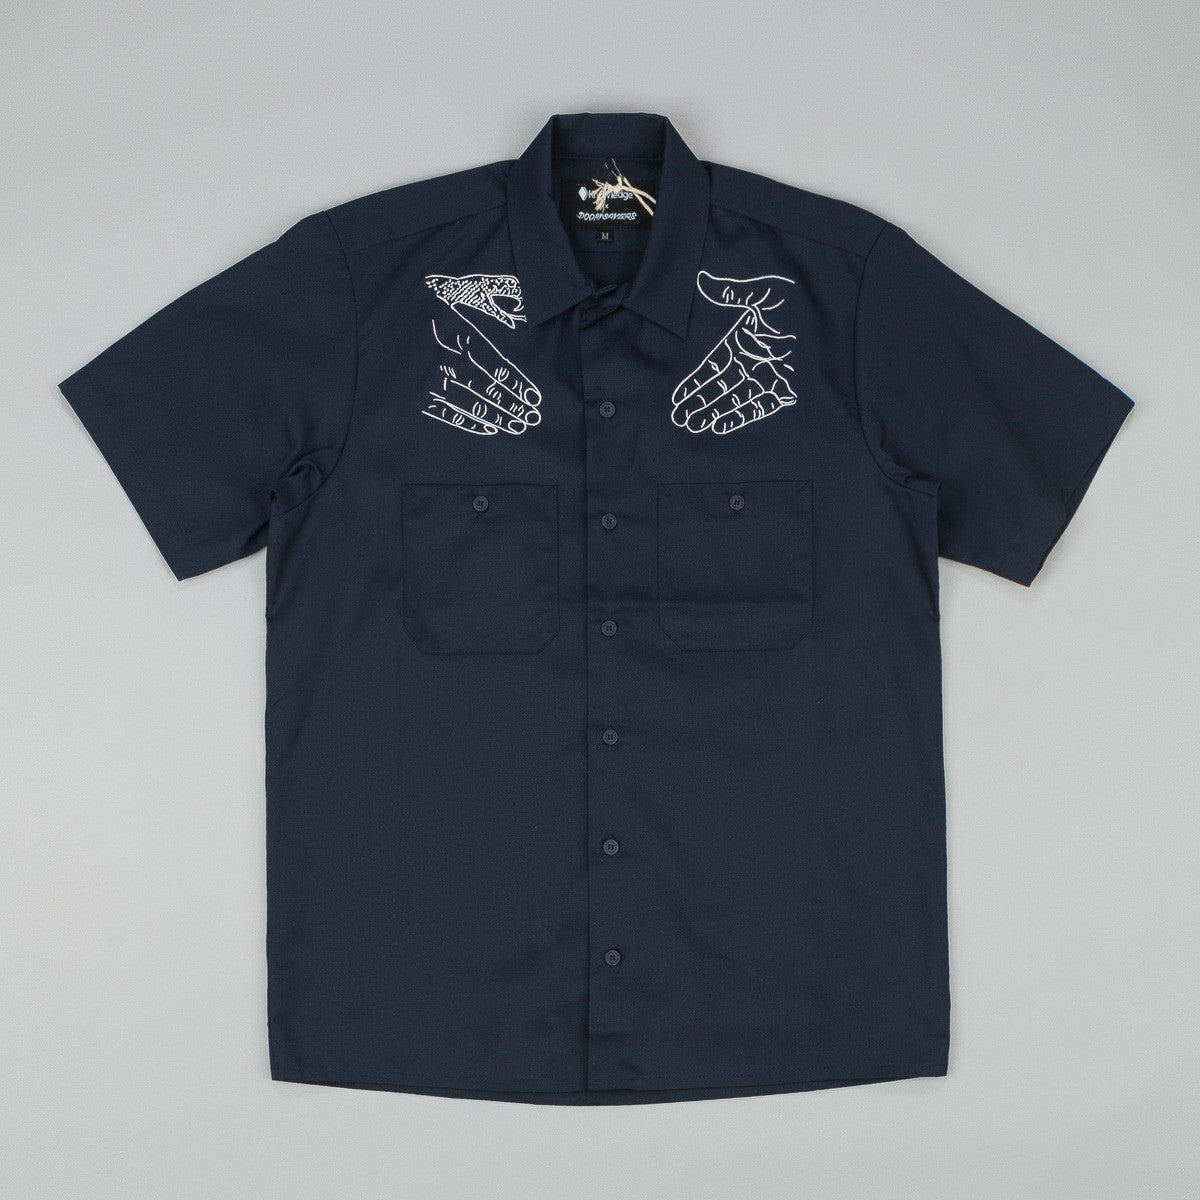 Doom Sayers X Know1edge Snake Shake Button Up S/S Shirt - Navy